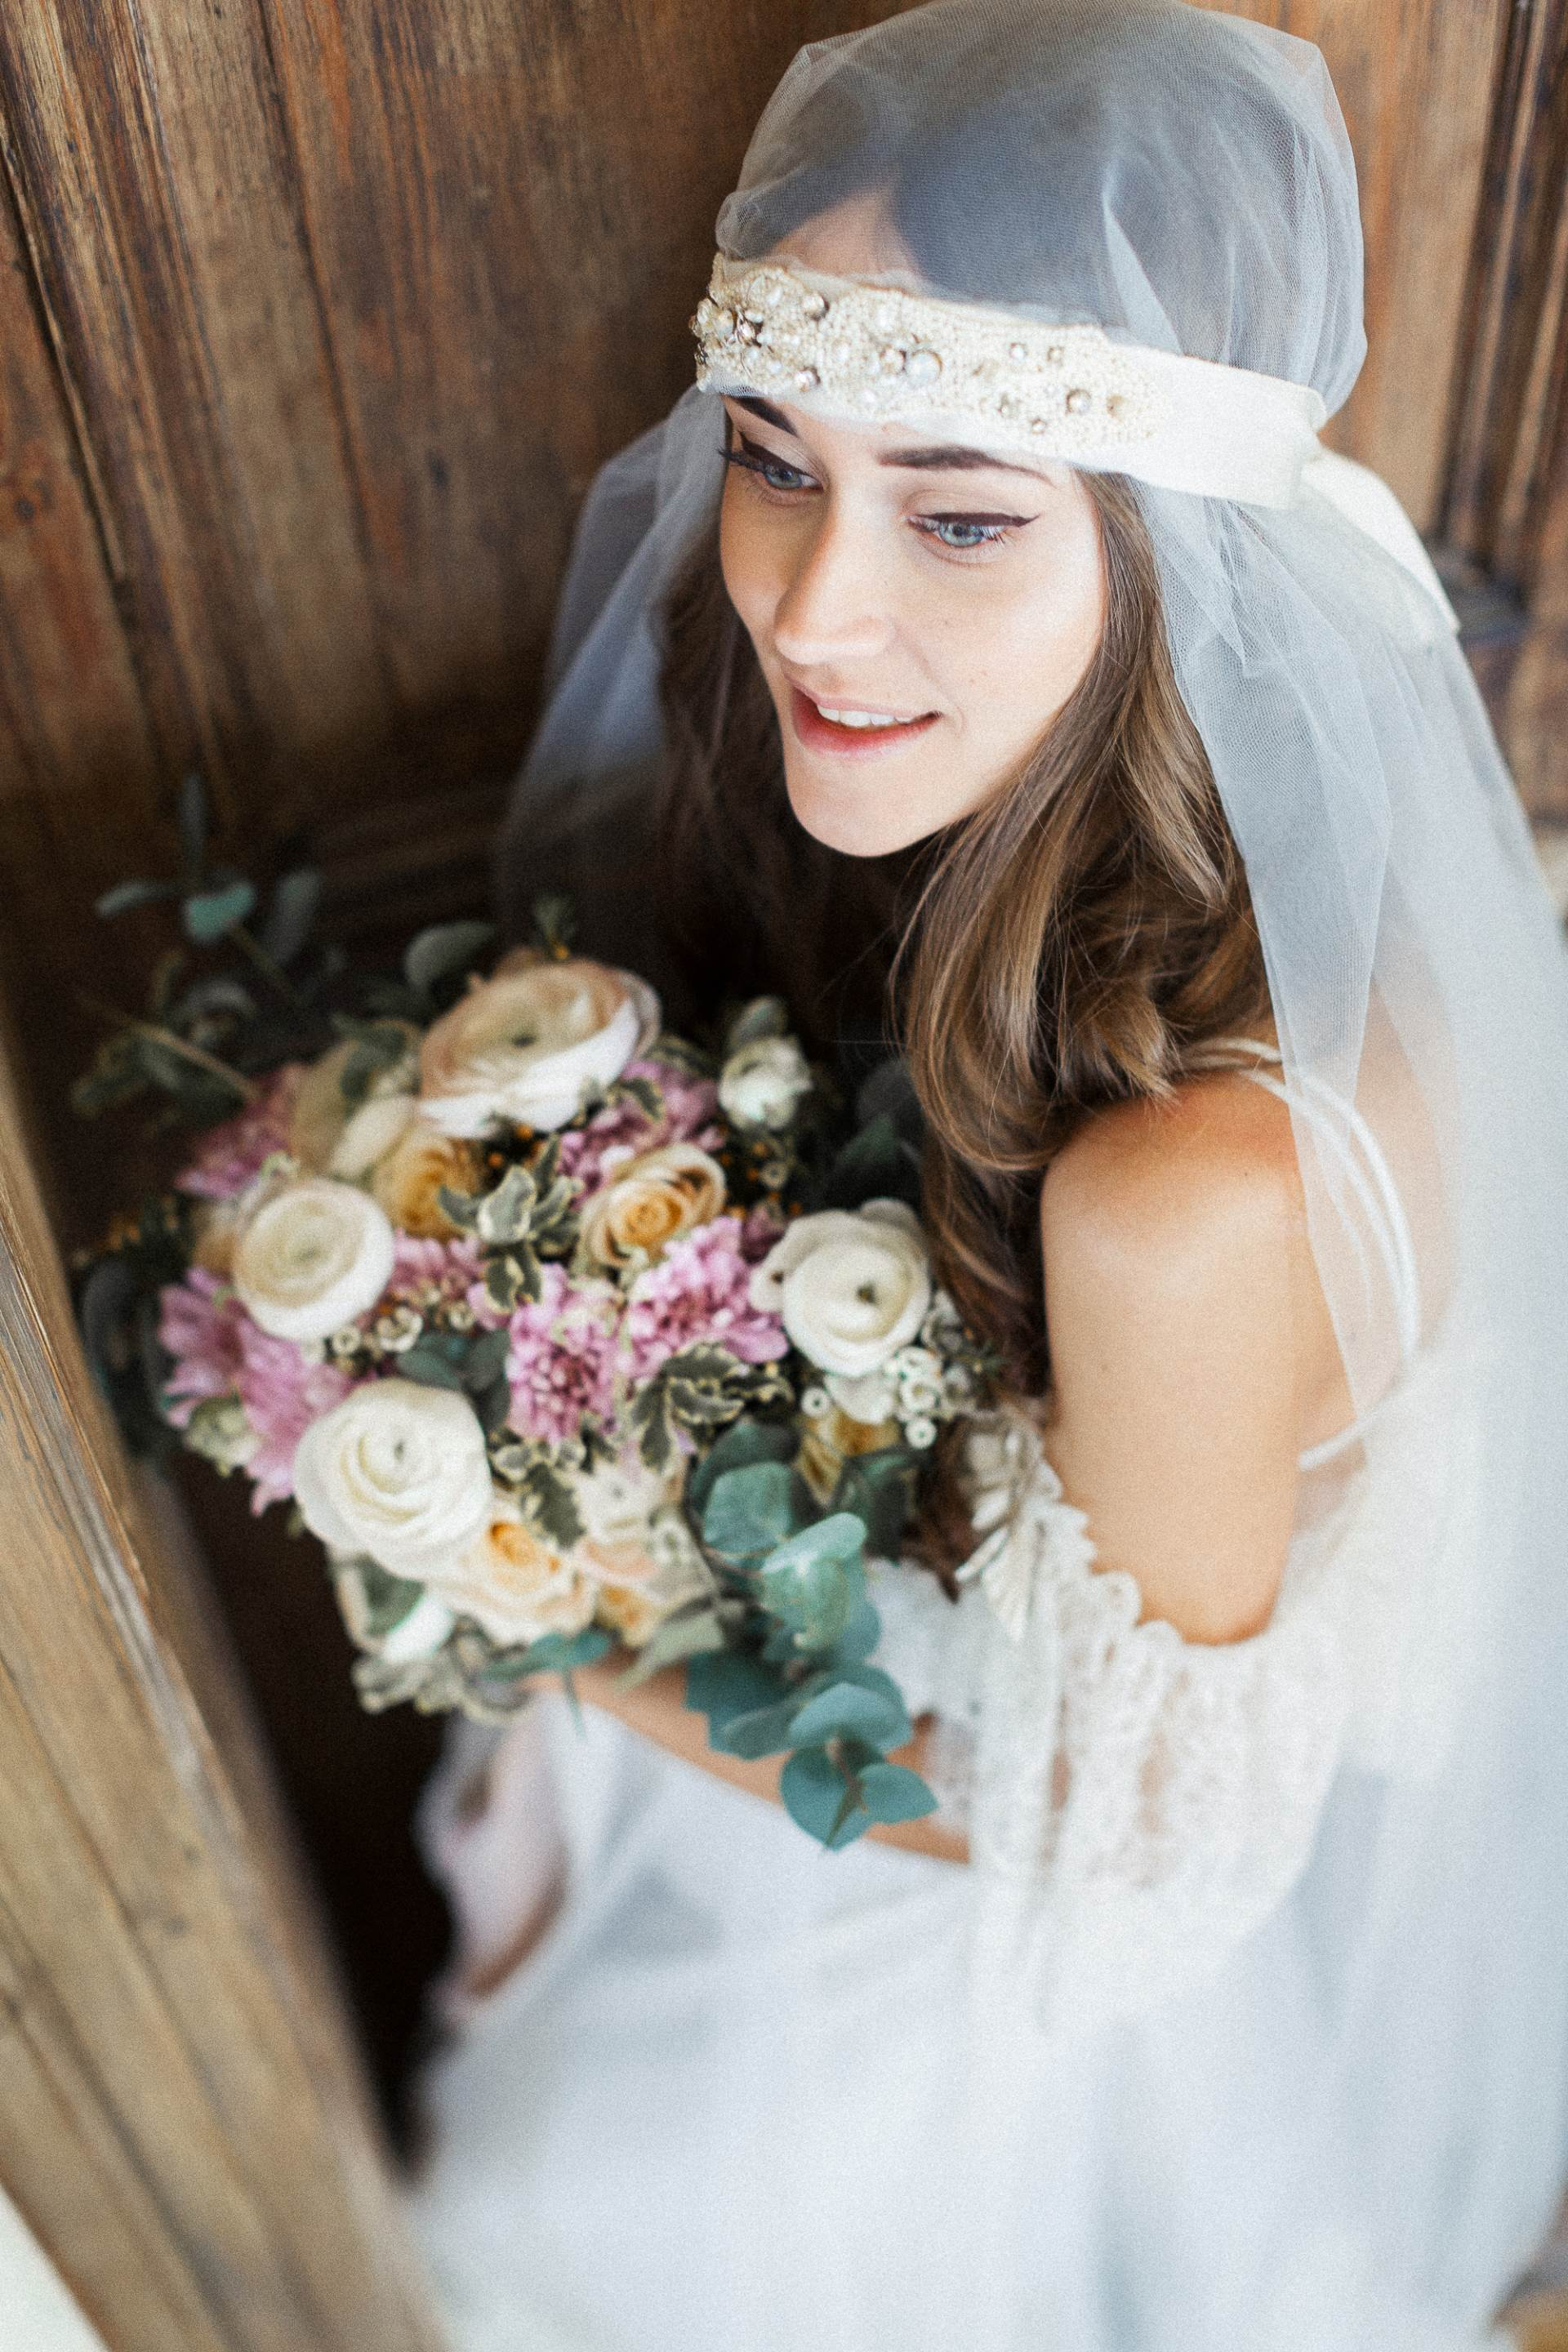 Flowers of the Valley bridal collection from Katya Katya Shehurina as featured on The National Vintage Wedding fair blog